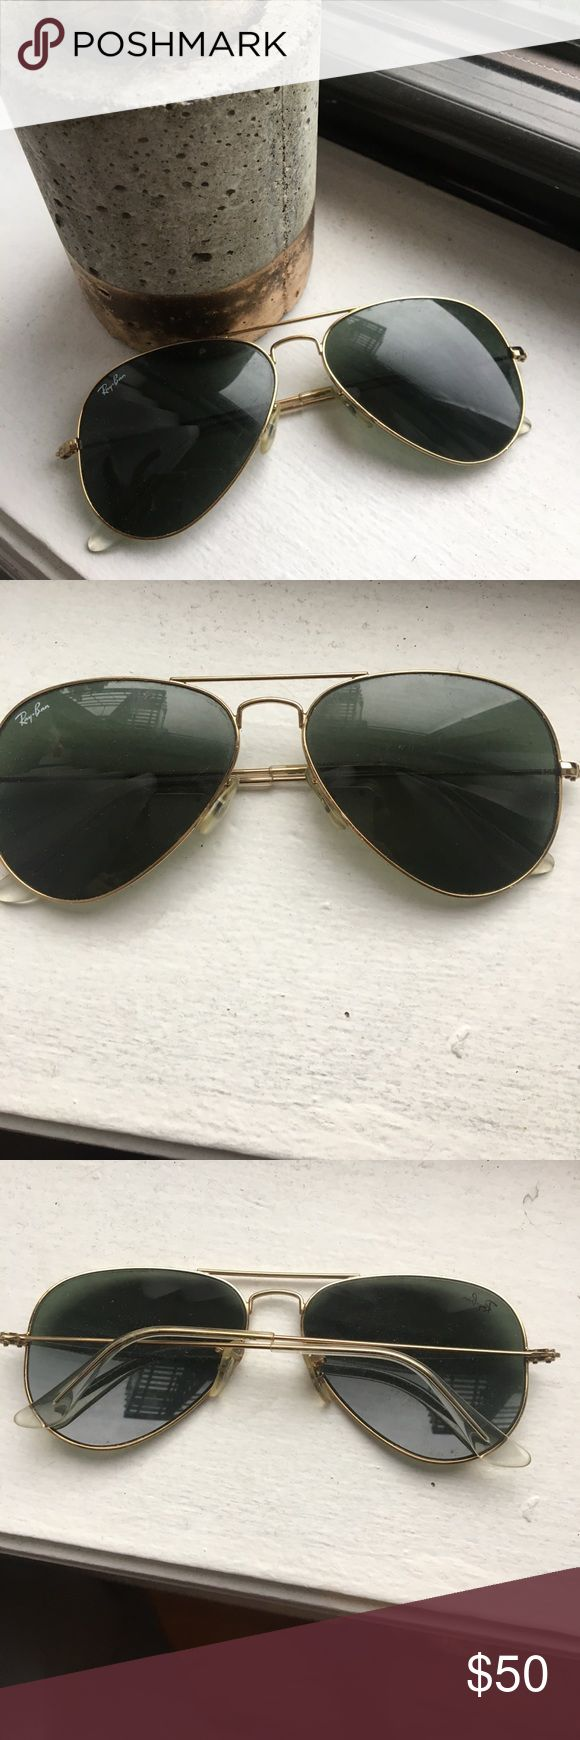 Ray-Bans Large Aviators Gold/Green Lenses Lightly worn ray-bans in the large aviator style. Note - I lost the case for this one! Ray-Ban Accessories Sunglasses